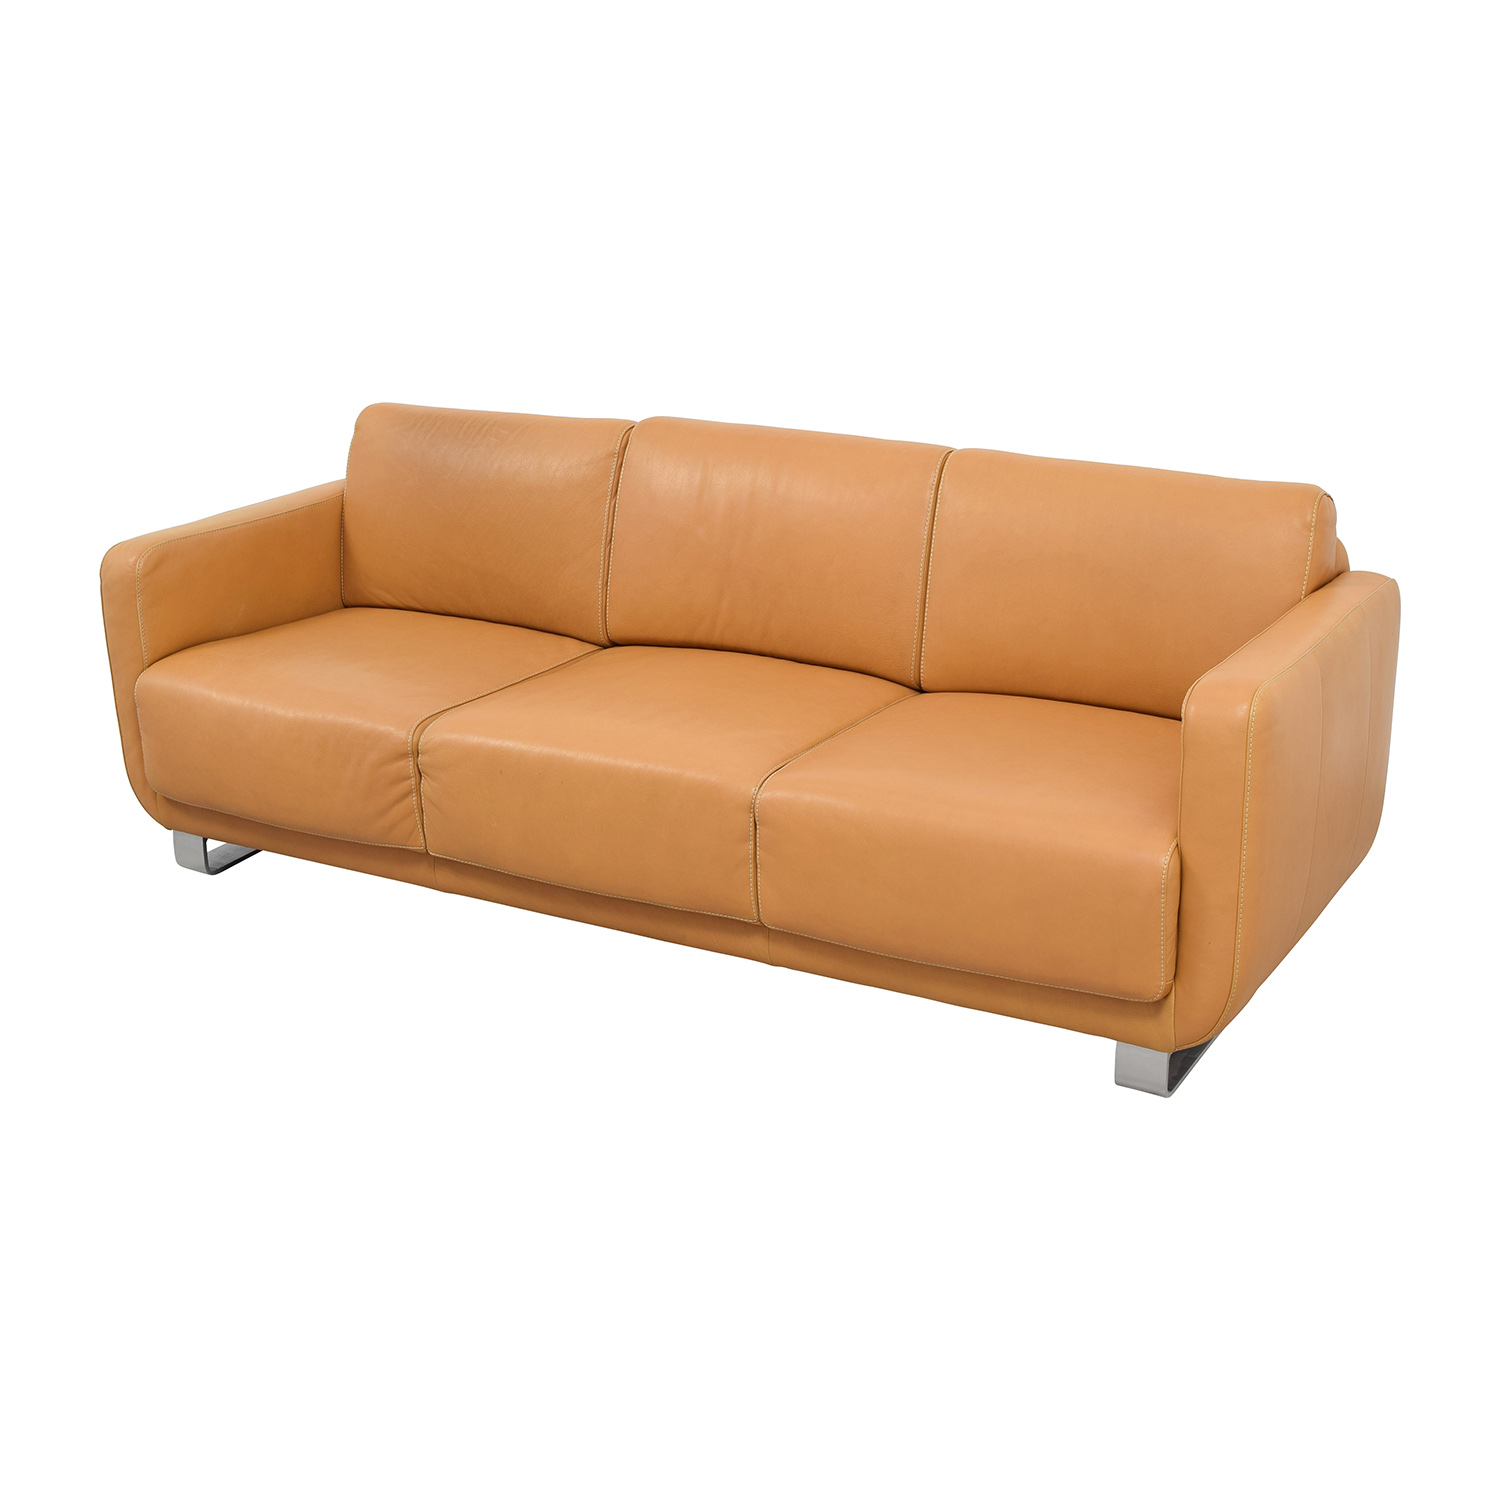 light brown leather reclining sofa luxury beds melbourne 74 off w schillig